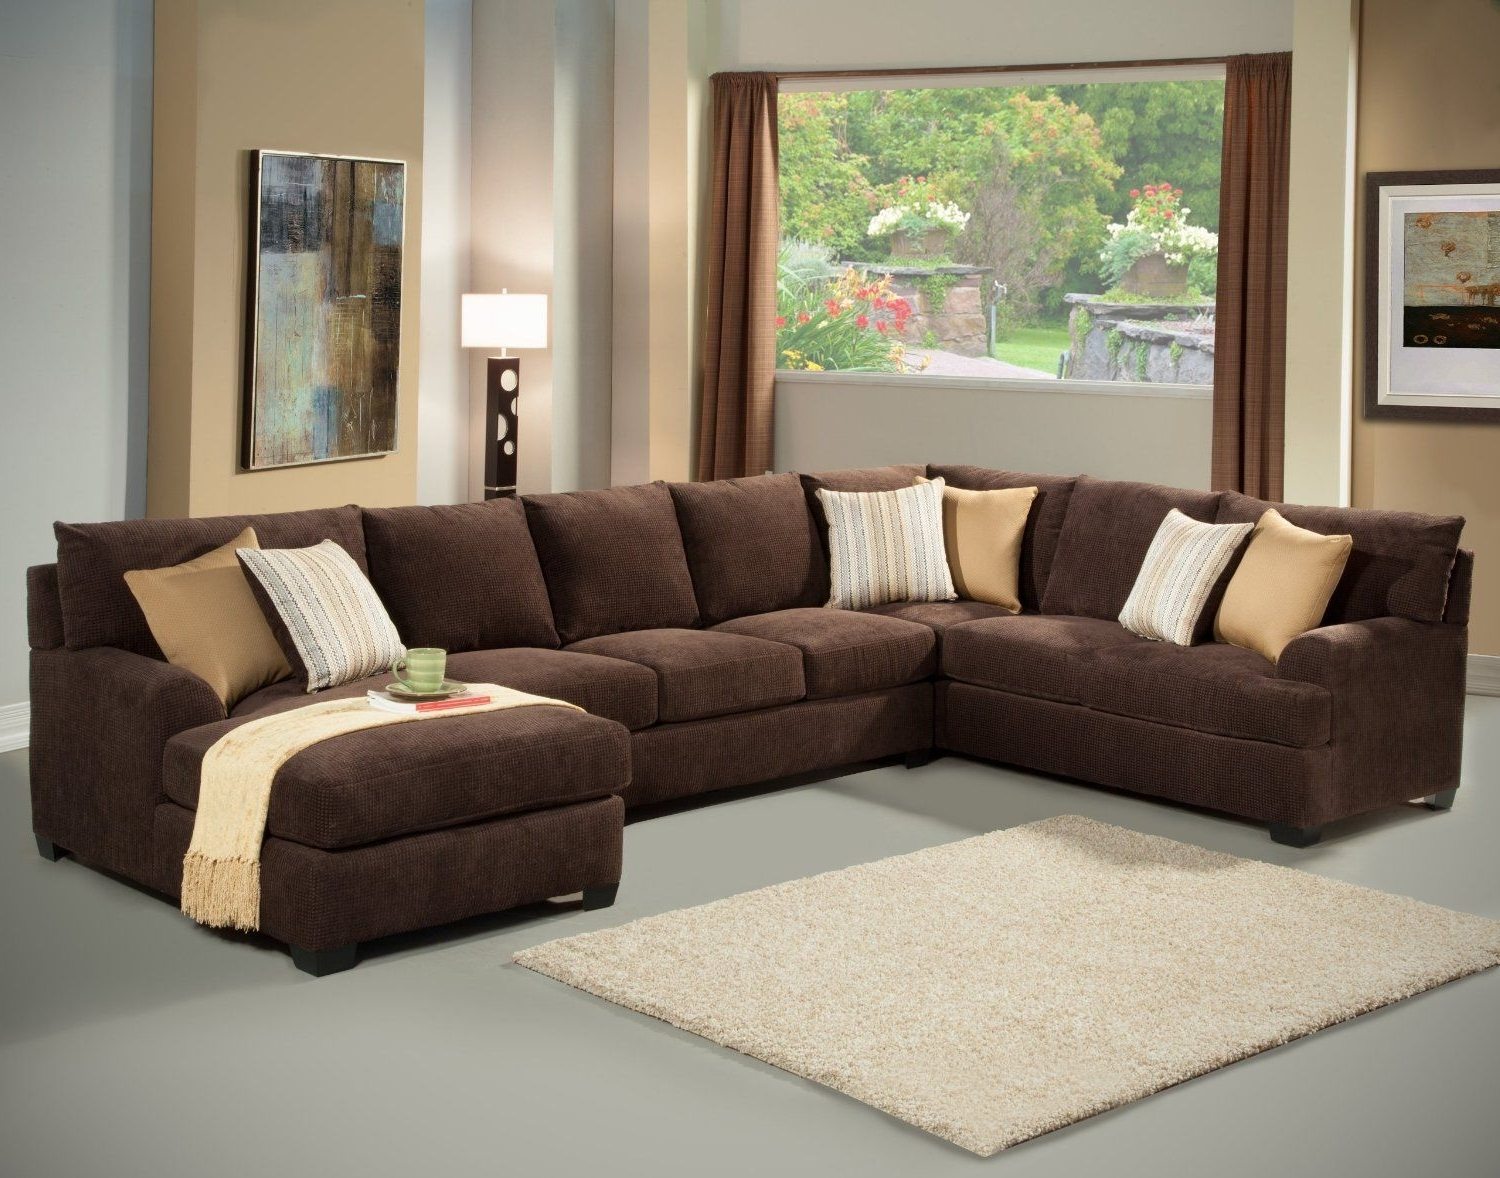 Preferred Sectional Sofas At Amazon Pertaining To Amazon – Furniture Of America Navelis 3 Piece Micro Denier (View 10 of 20)